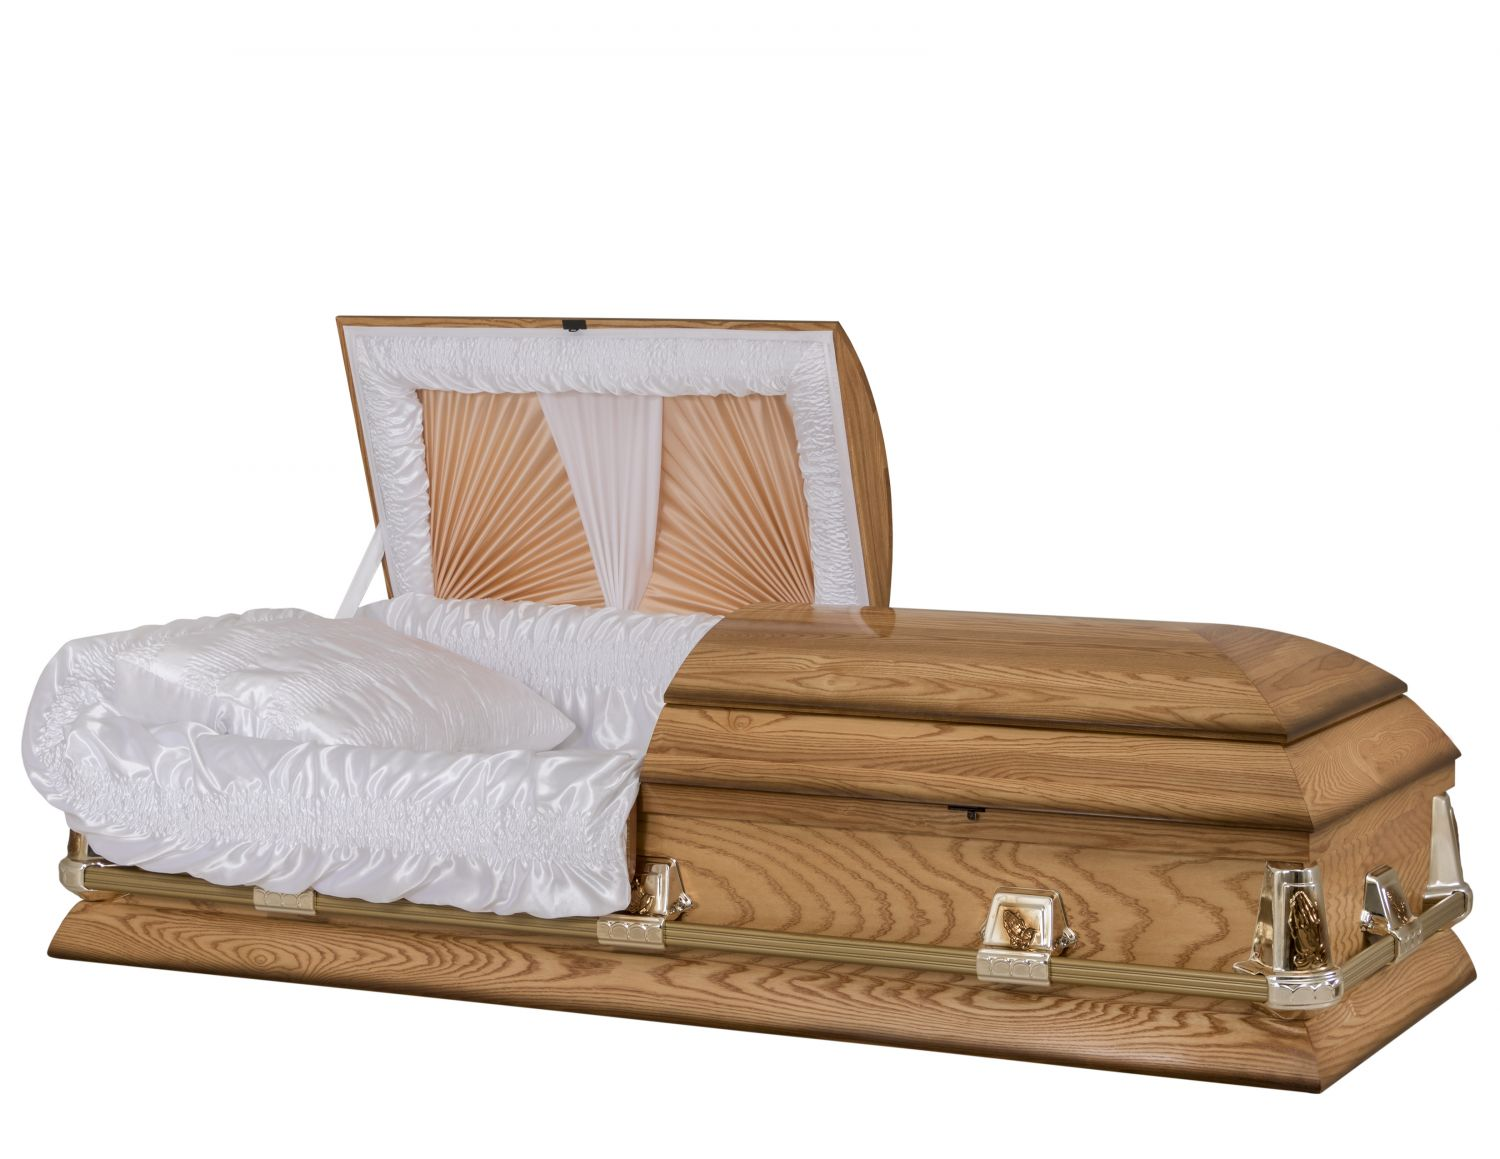 Concept Caskets 40000-00271-N ASH CASKET GLOSS SATIN MEDIUM WOOD FIBER NO B9905 BUMPER    3 X 1 BRIGHT GOLD